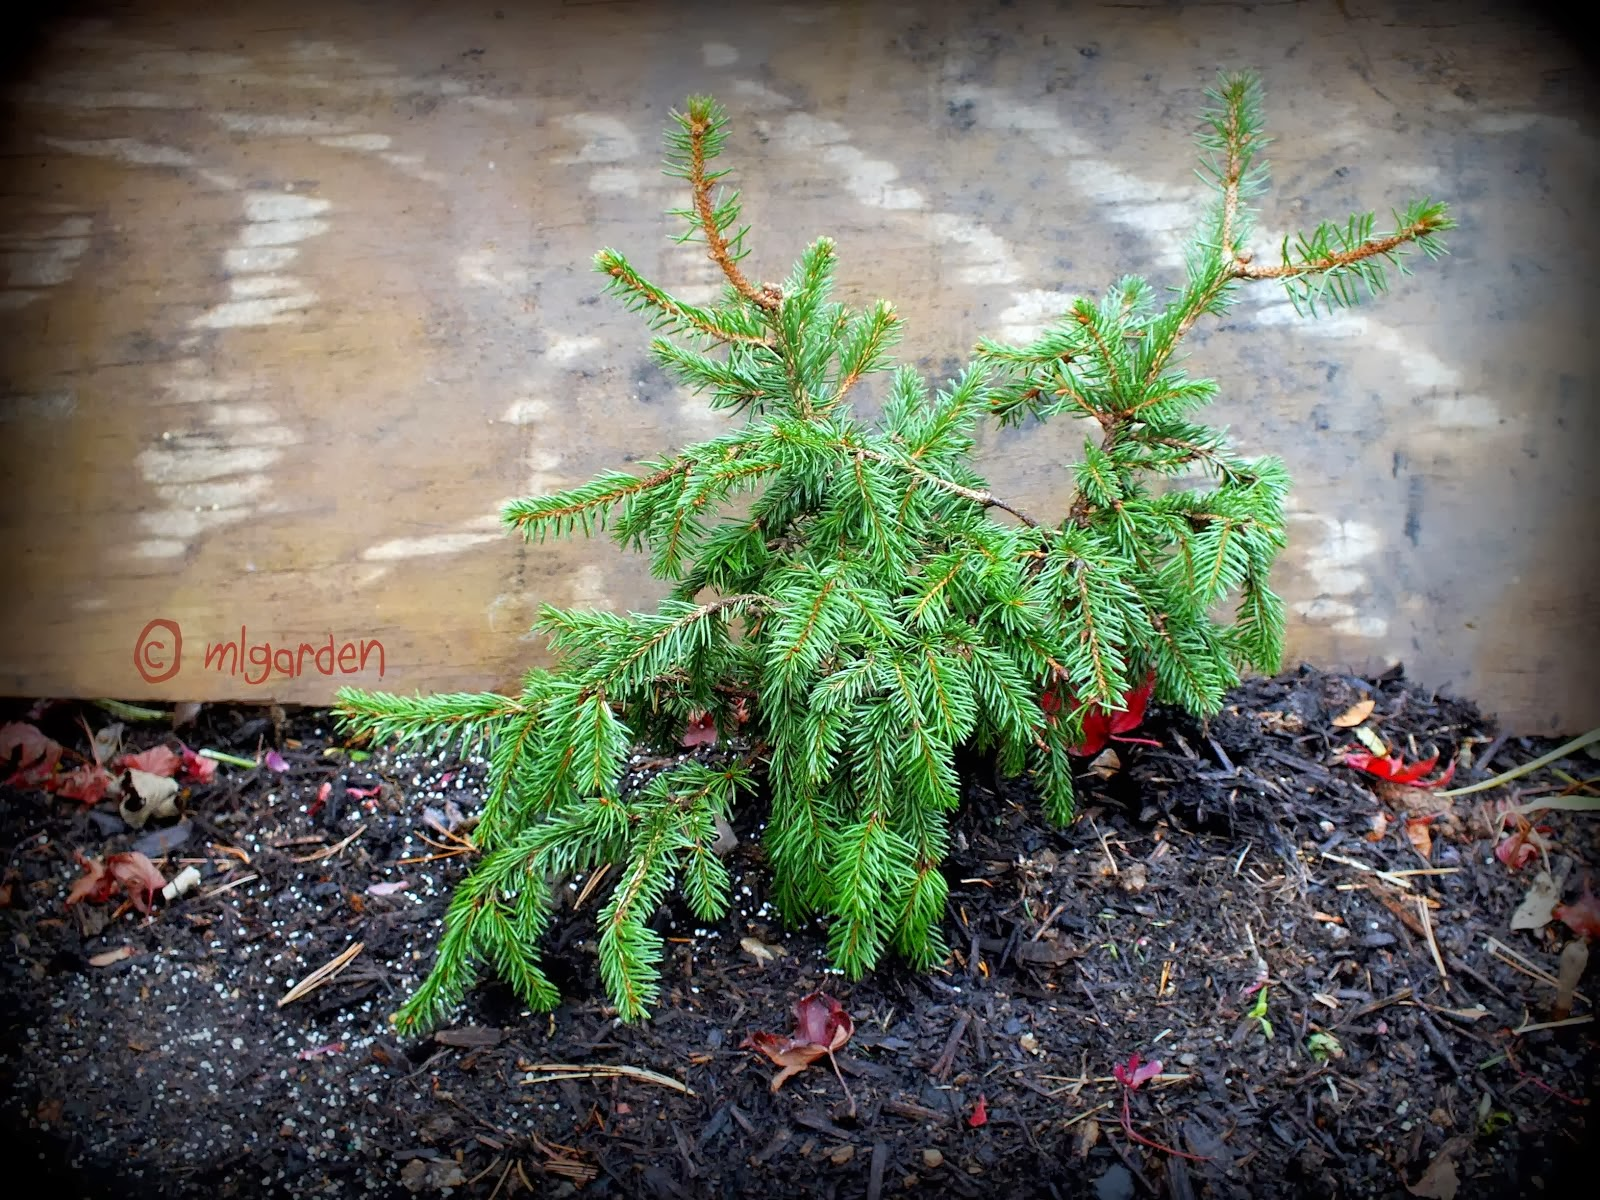 Picea abies ( no name yet)